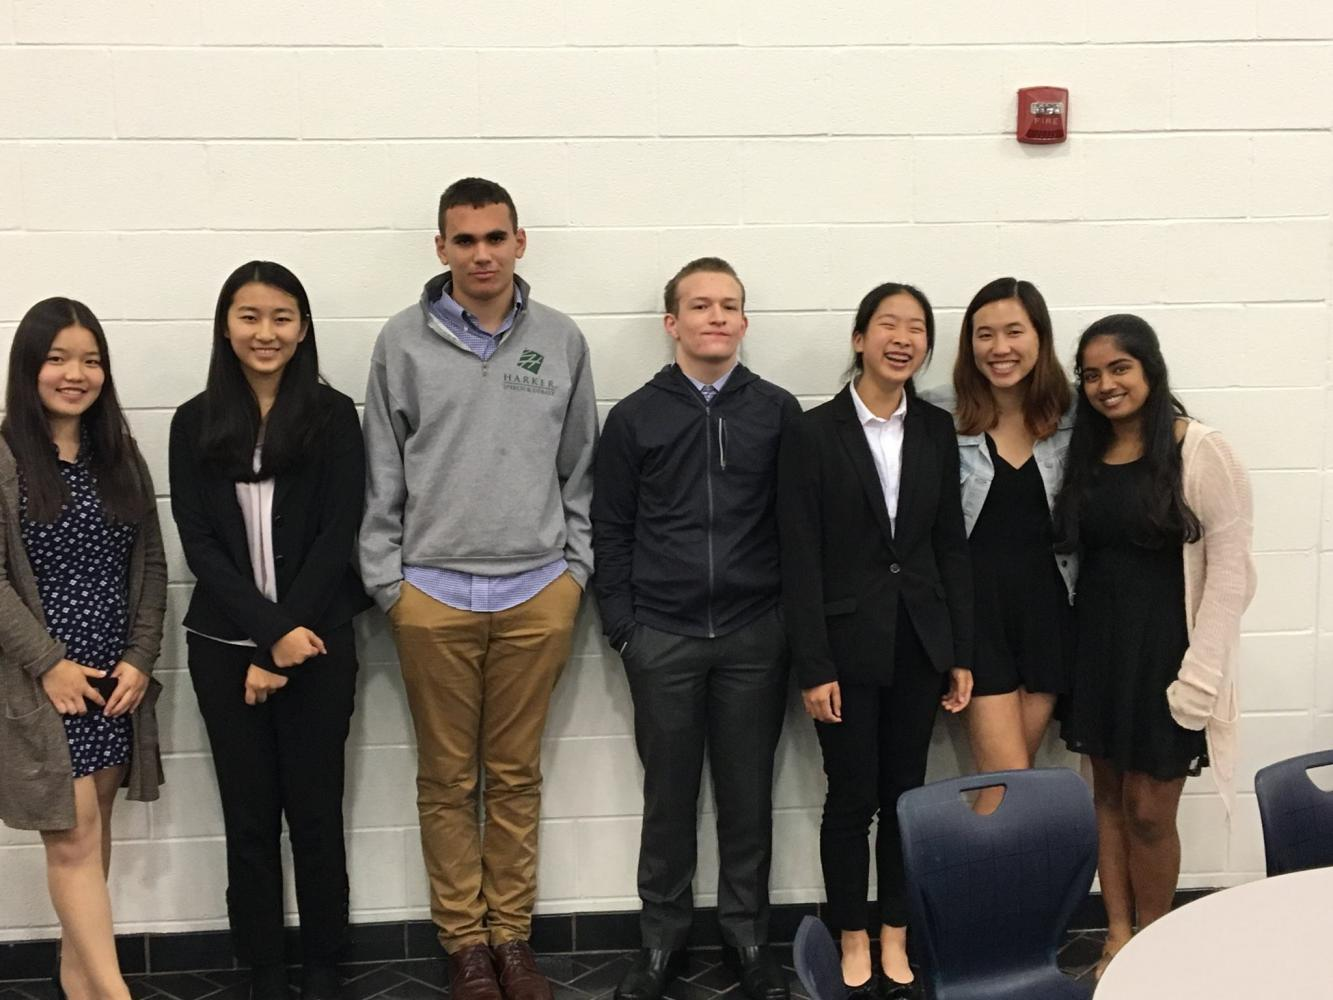 Cindy Wang (11), Clarissa Wang (11), Jacob Ohana (12), Alan Hughes (12), Kelly Shen (11), Megan Huynh (12) and Anusha Kuppahally (11) pose for a photo at the Grapevine tournament. Team Cindy and Clarissa advanced to the octofinals in public forum and team Megan and Anusha advanced to the octofinals in policy debate.